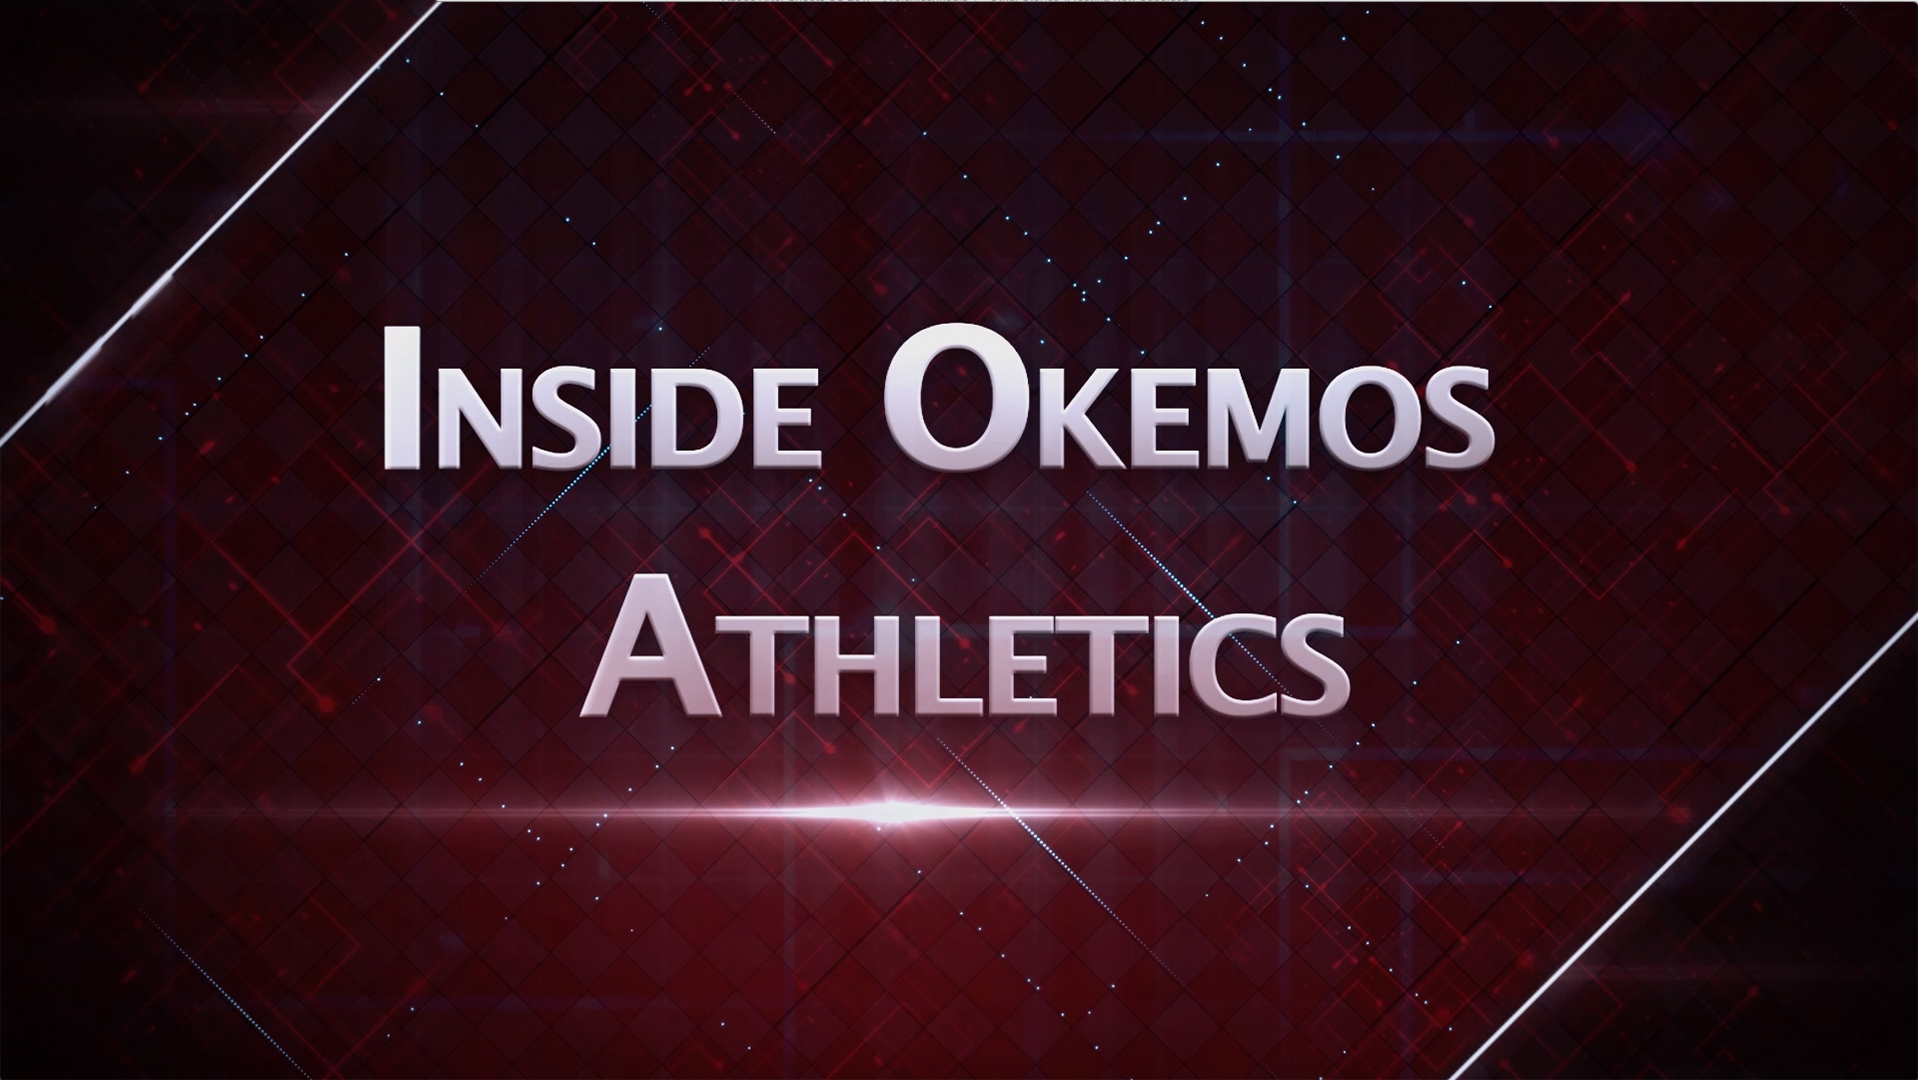 Inside Okemos Athletics